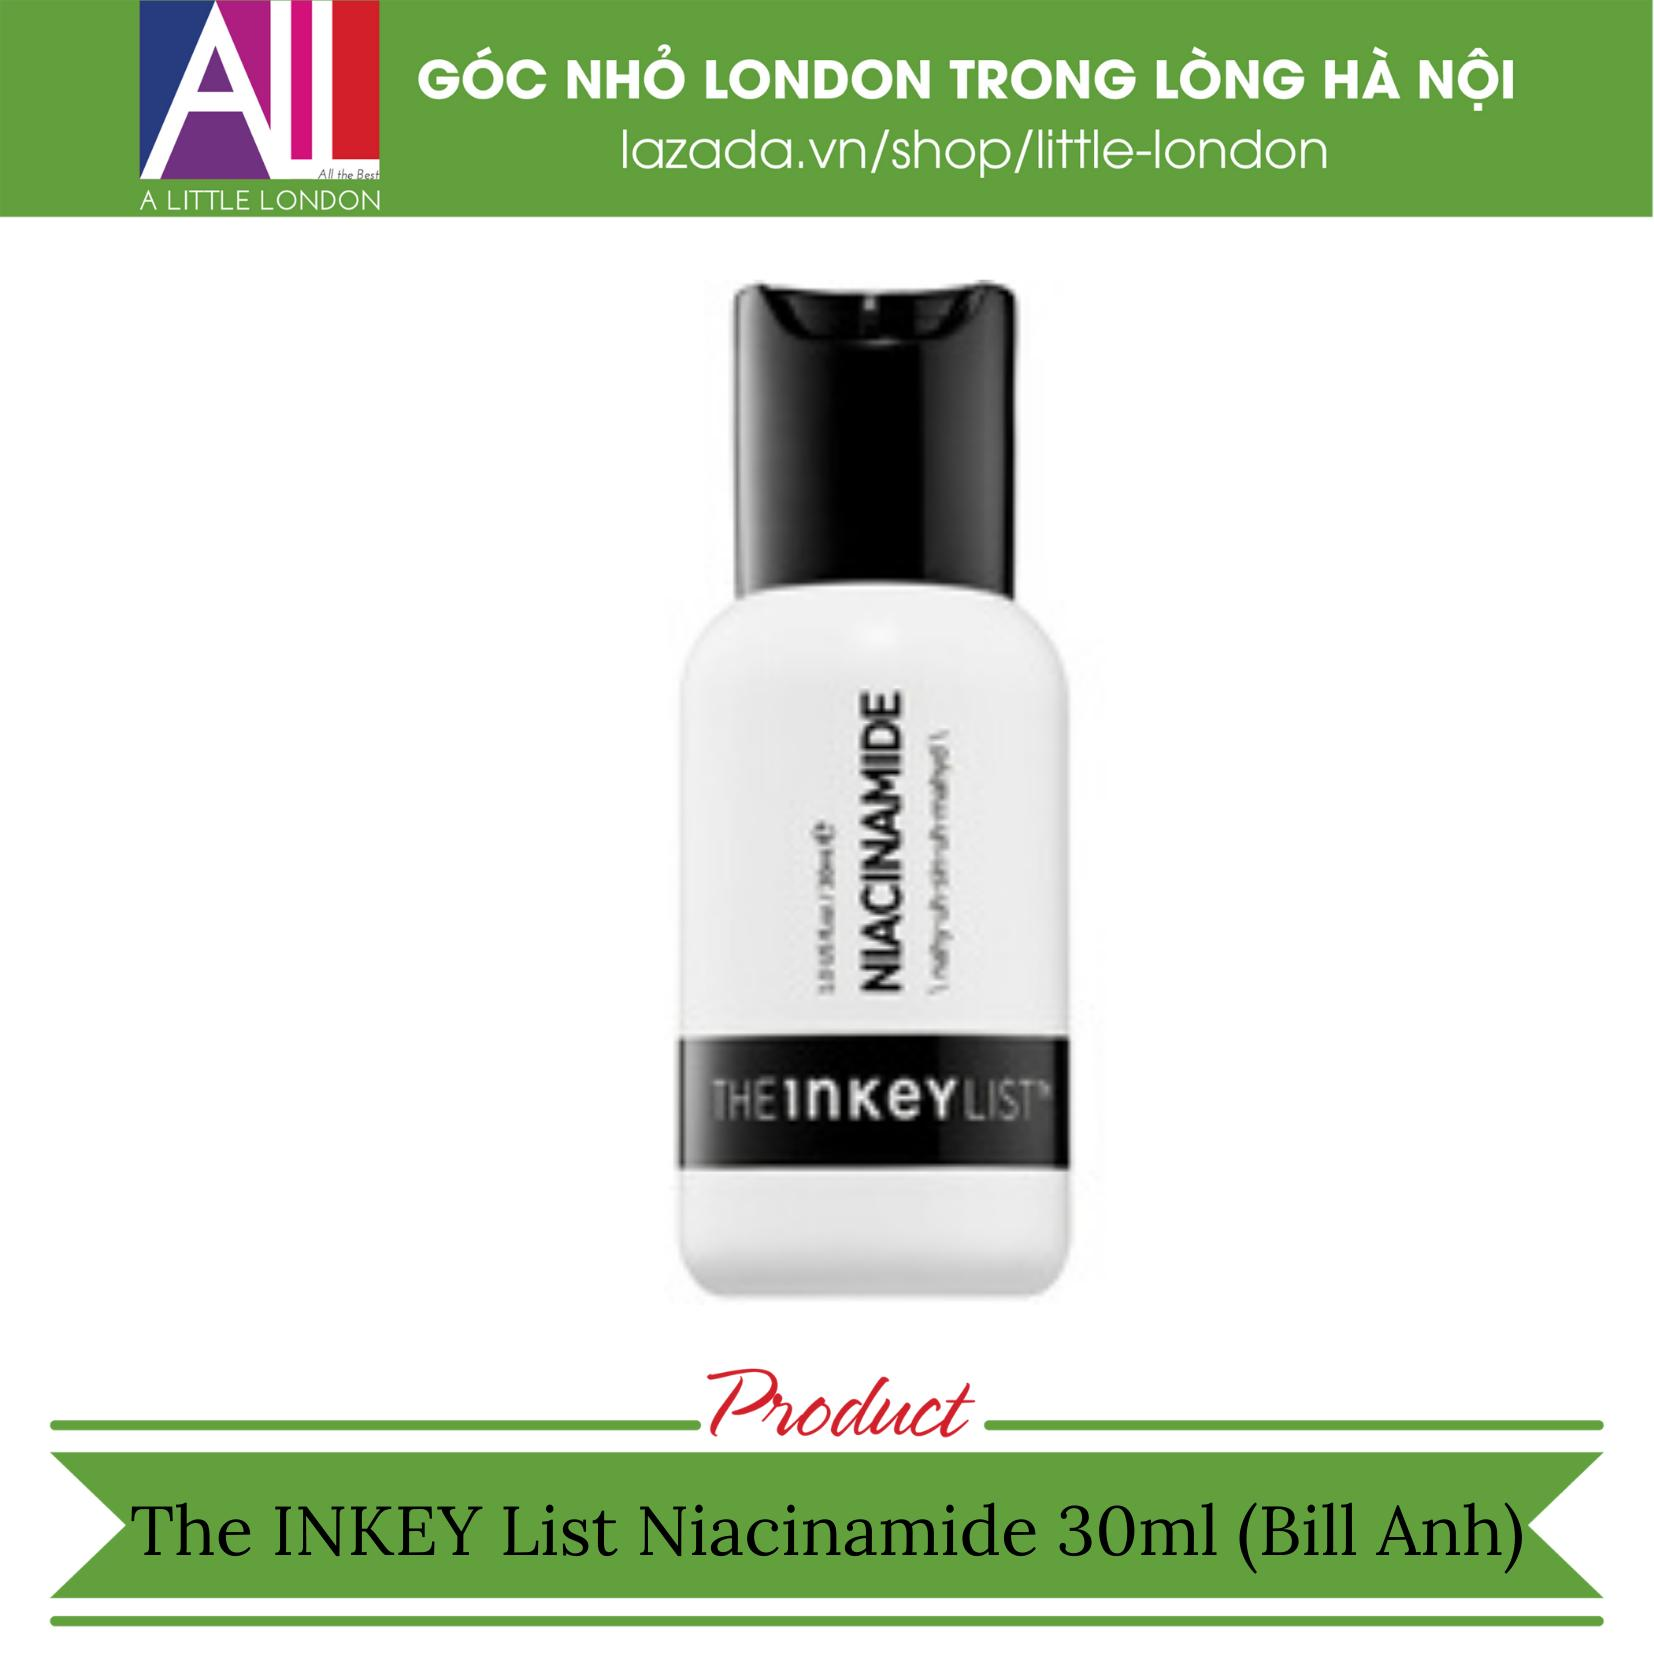 The INKEY List Niacinamide 30ml (Bill Anh)